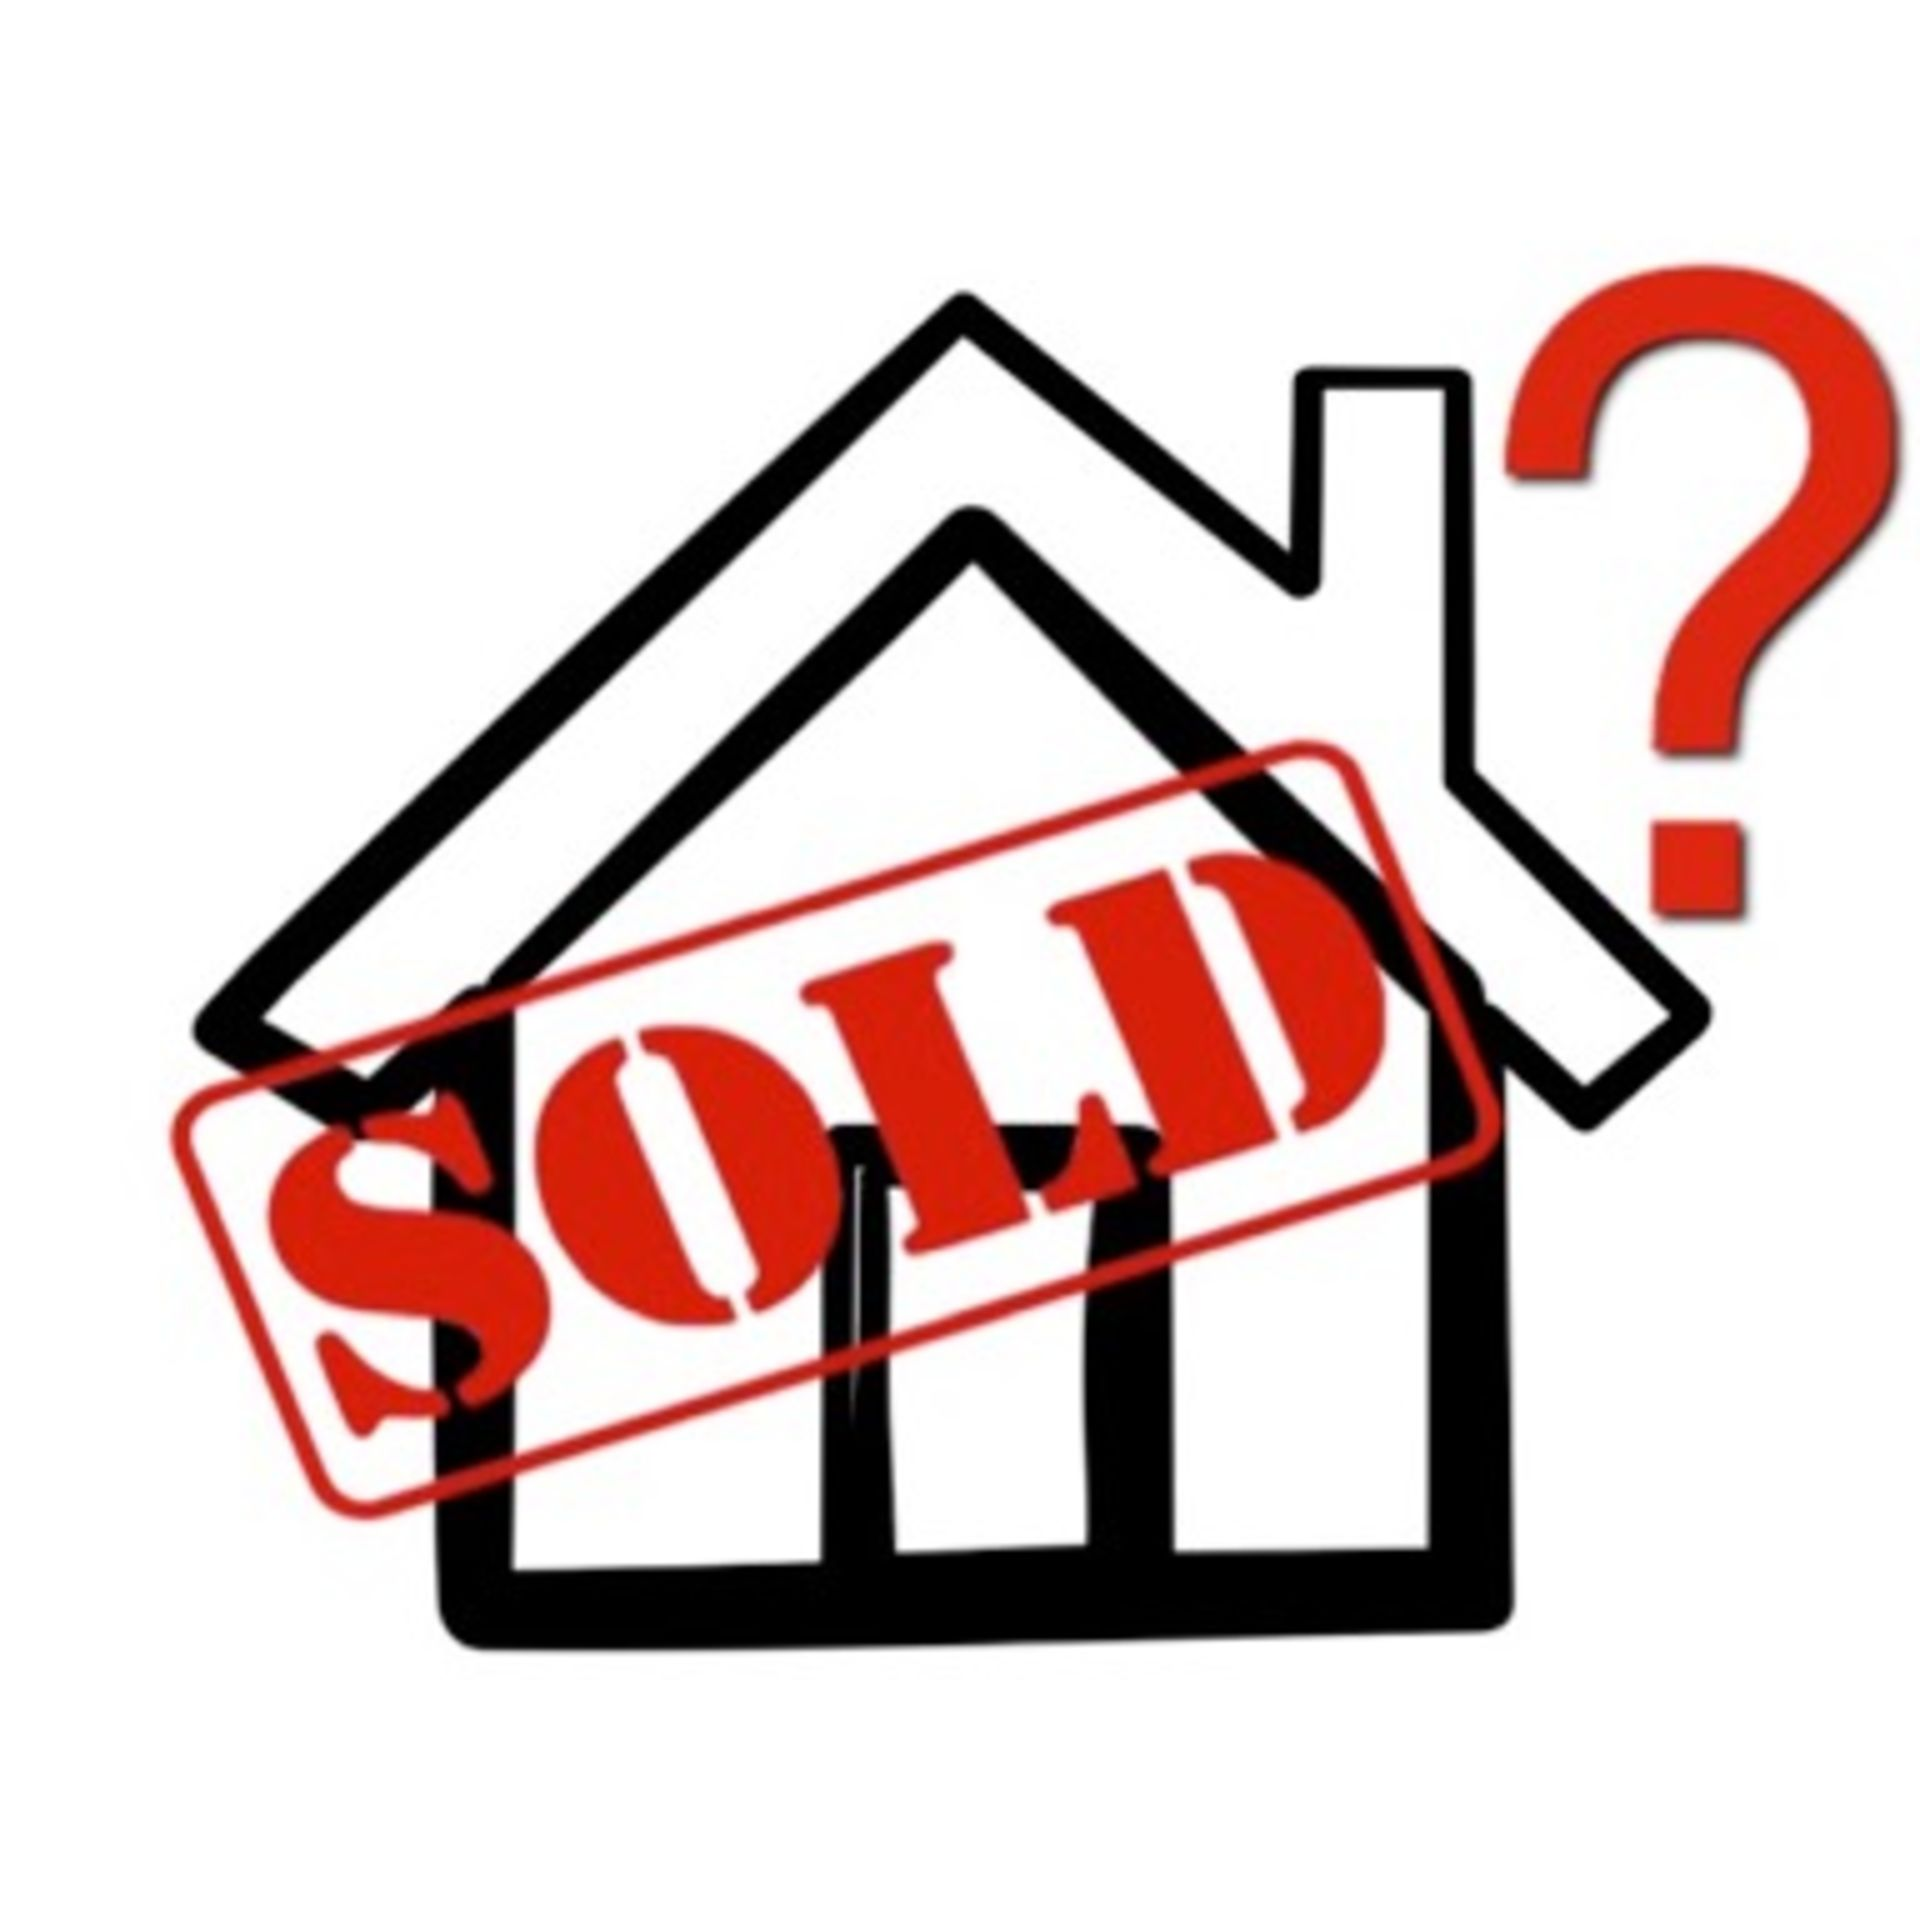 AGREEING ON A PRICE DOES NOT MEAN YOUR HOUSE IS SOLD!